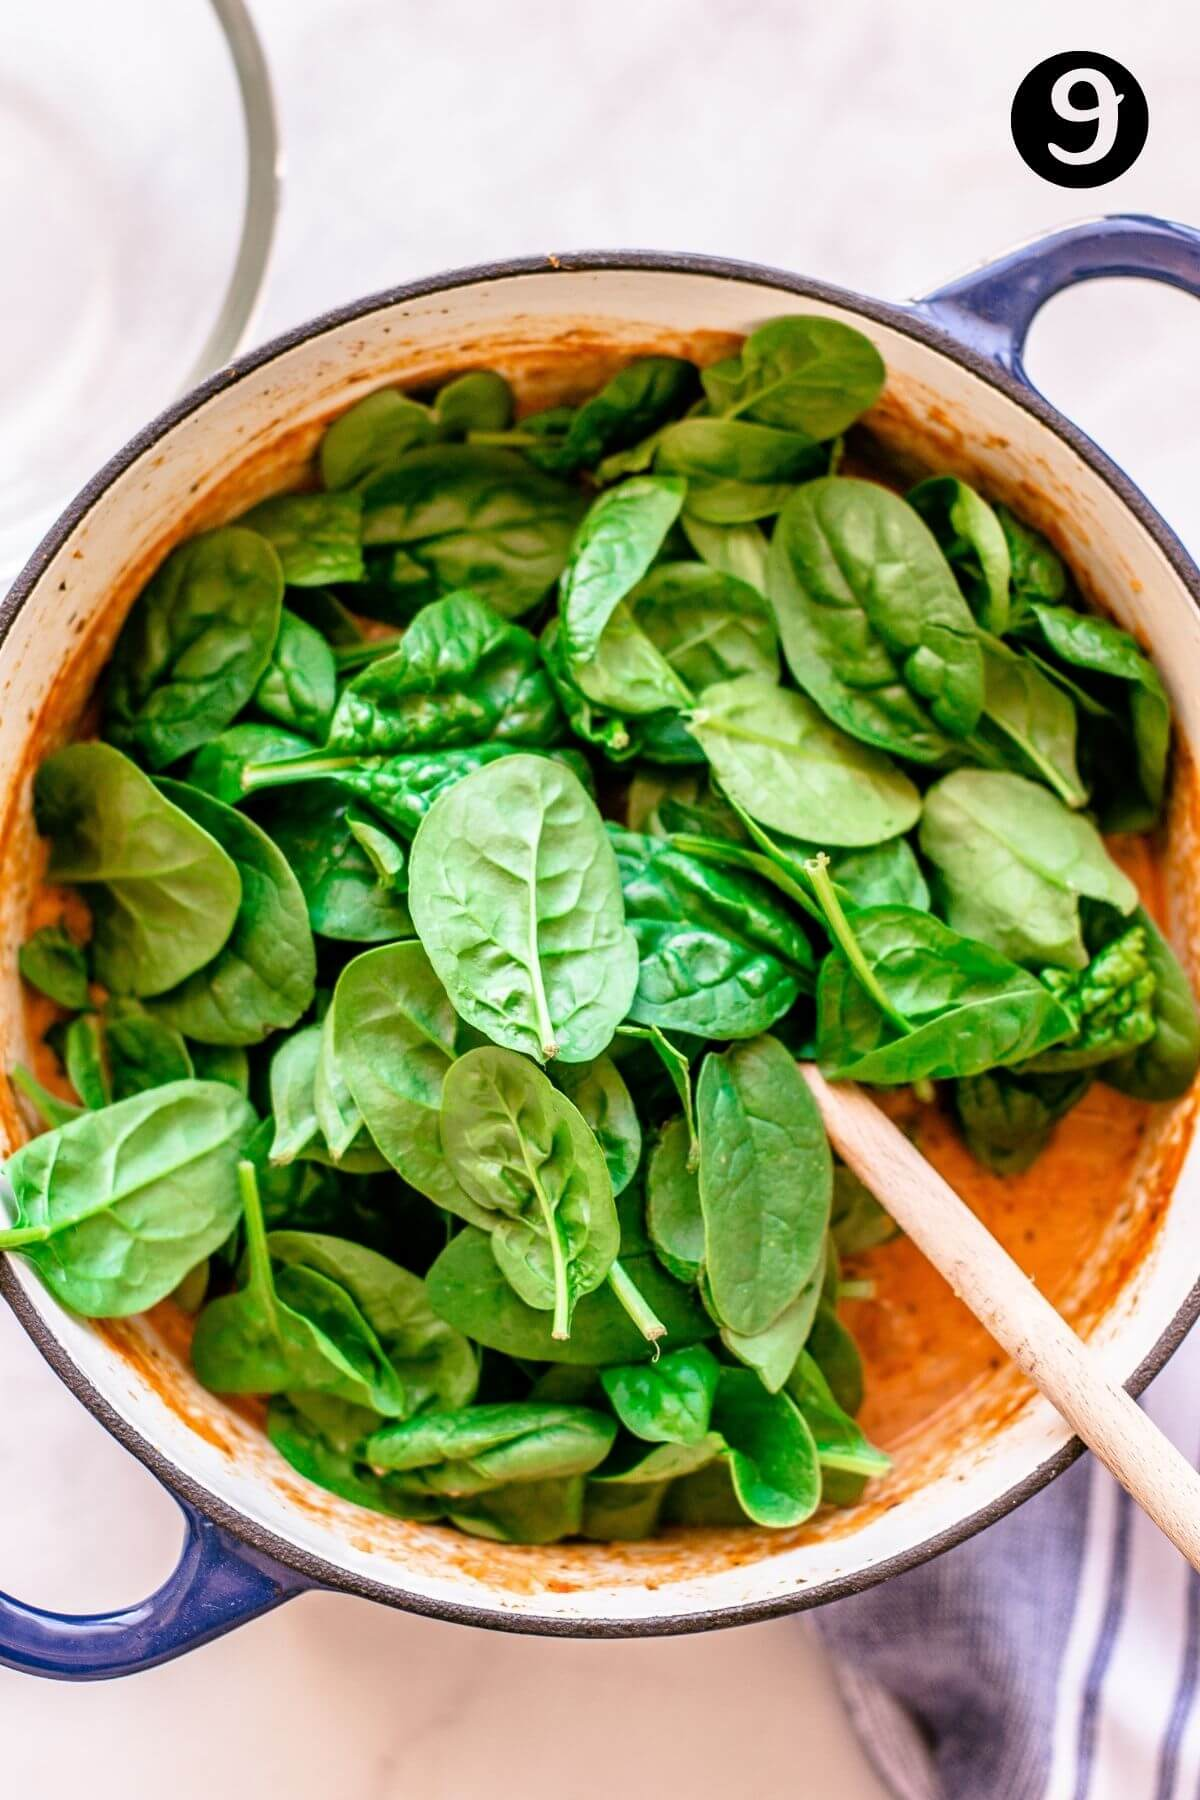 spinach leaves sitting on top of tomato sauce in a pot